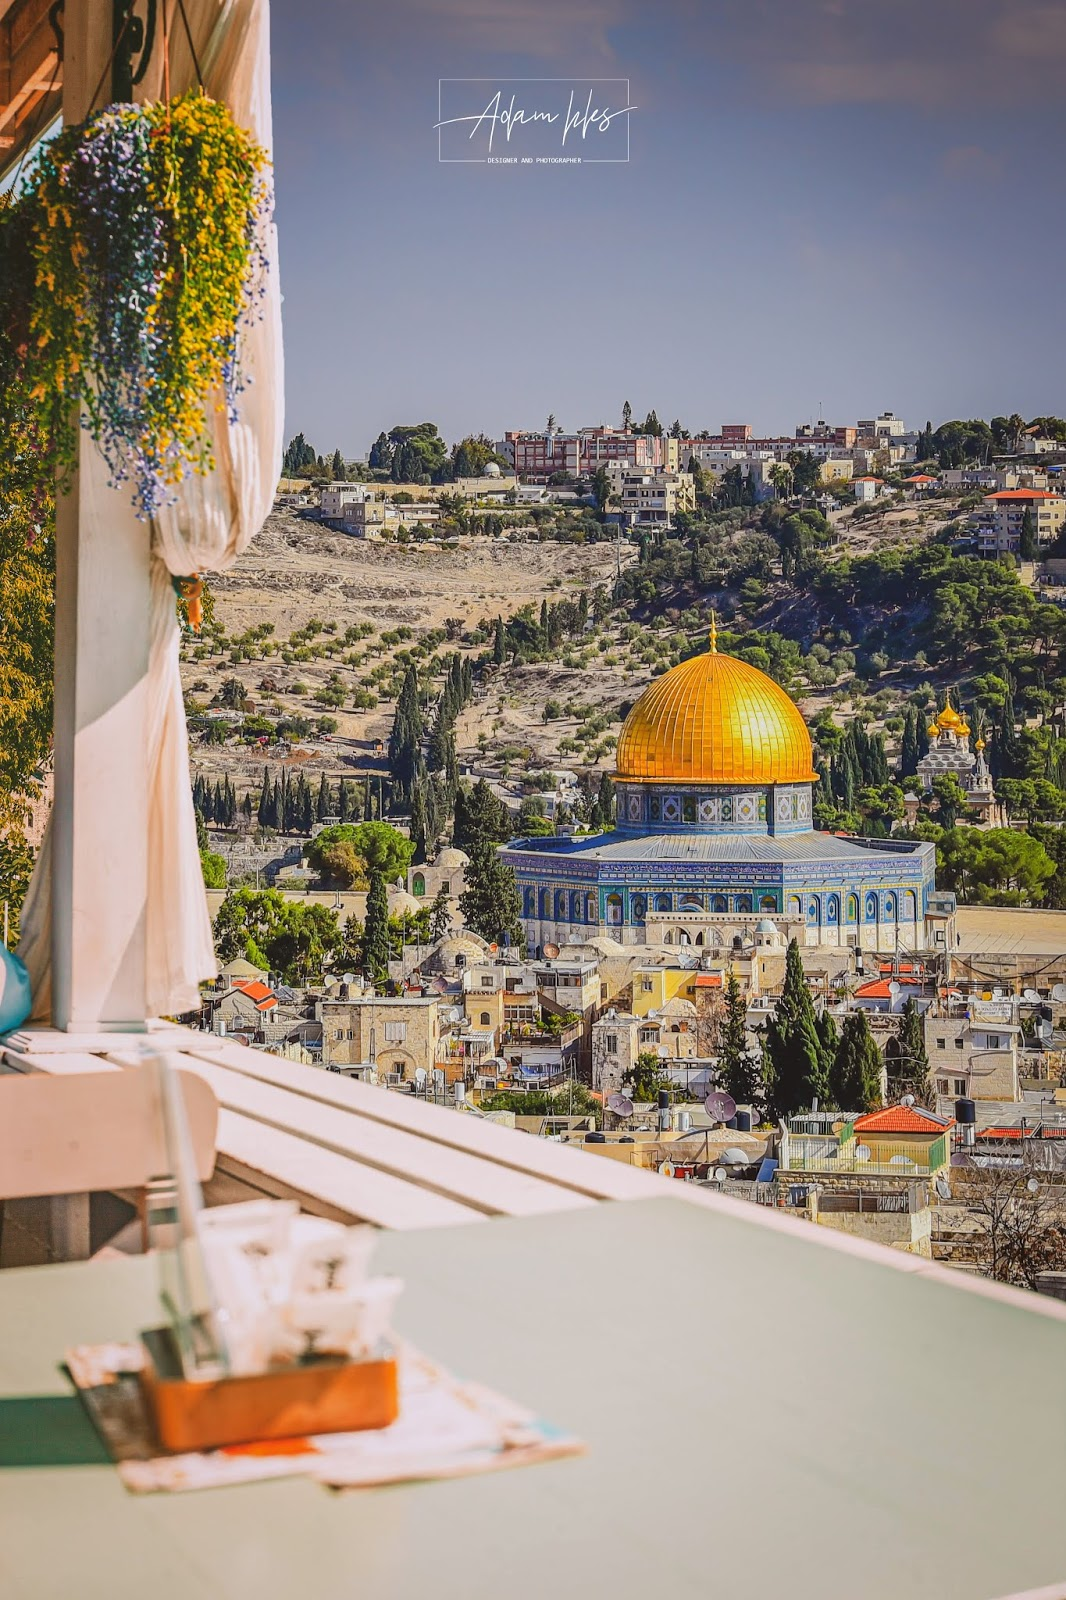 Jerusalem wallpapers with high quality